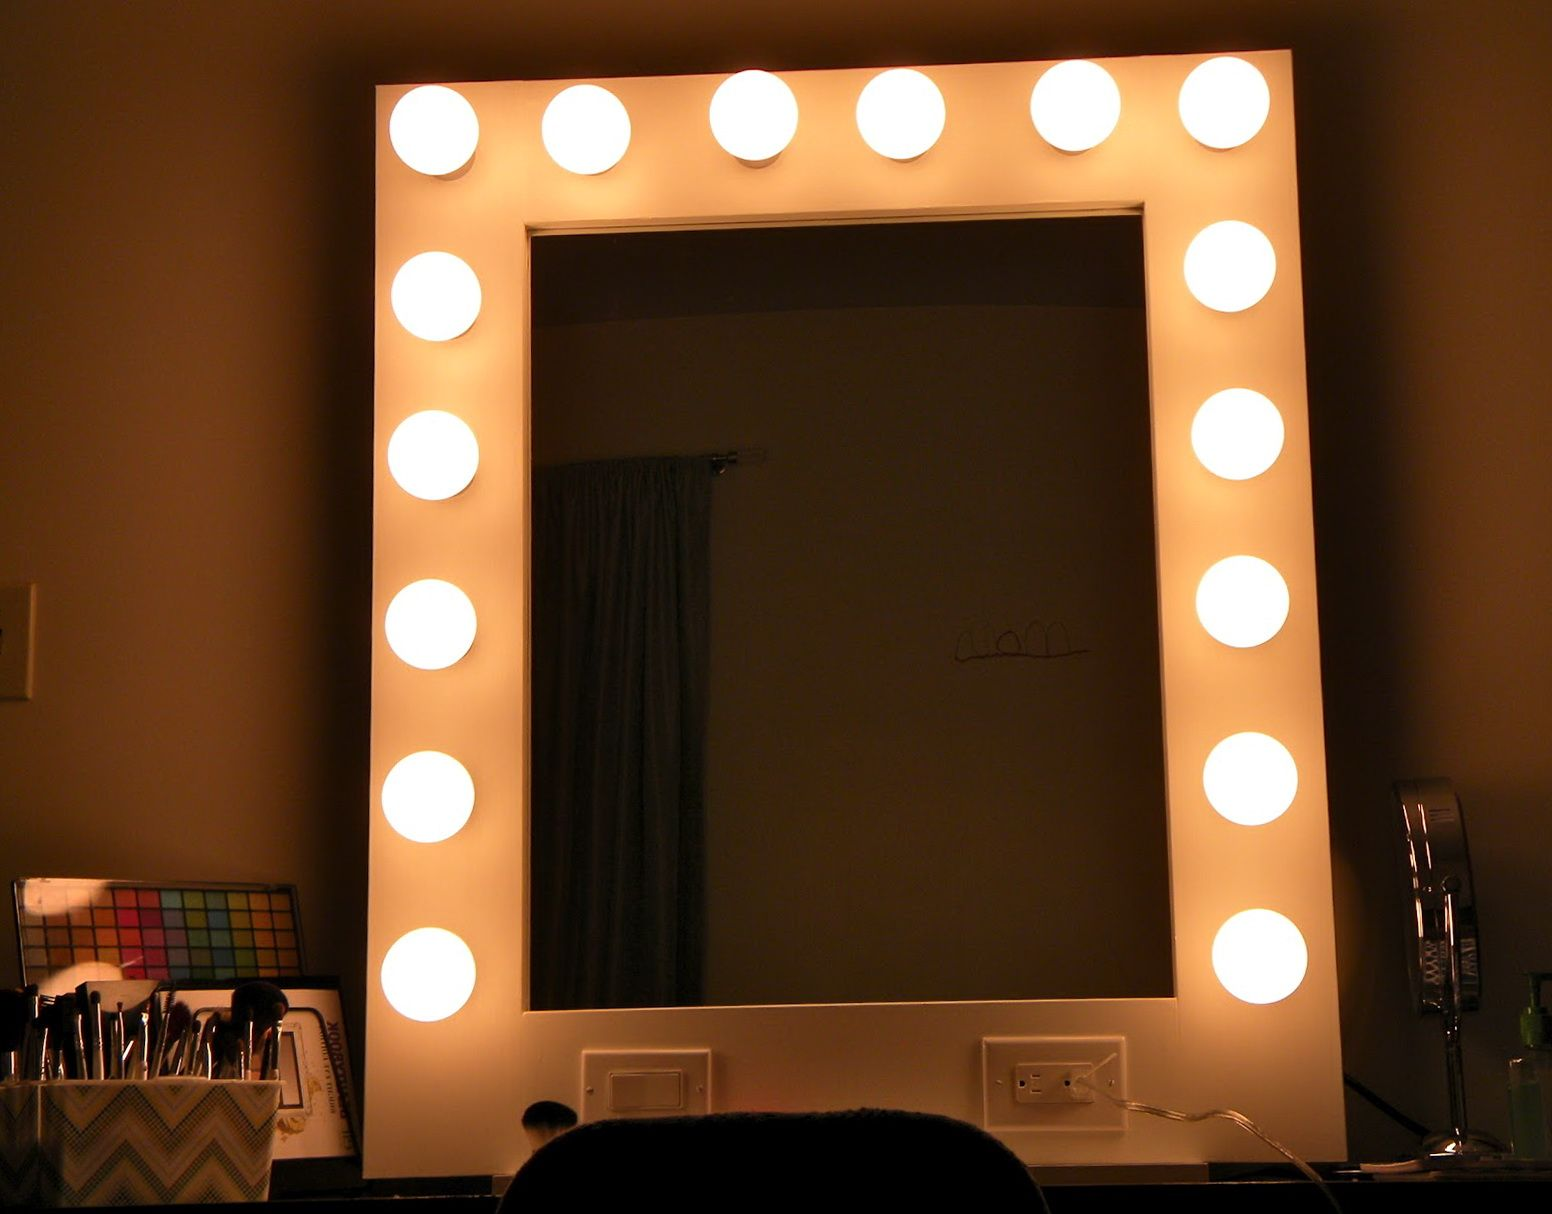 mirror with light bulbs Mirror With Light Bulbs Ikea | Home Design Ideas | lamps  mirror with light bulbs